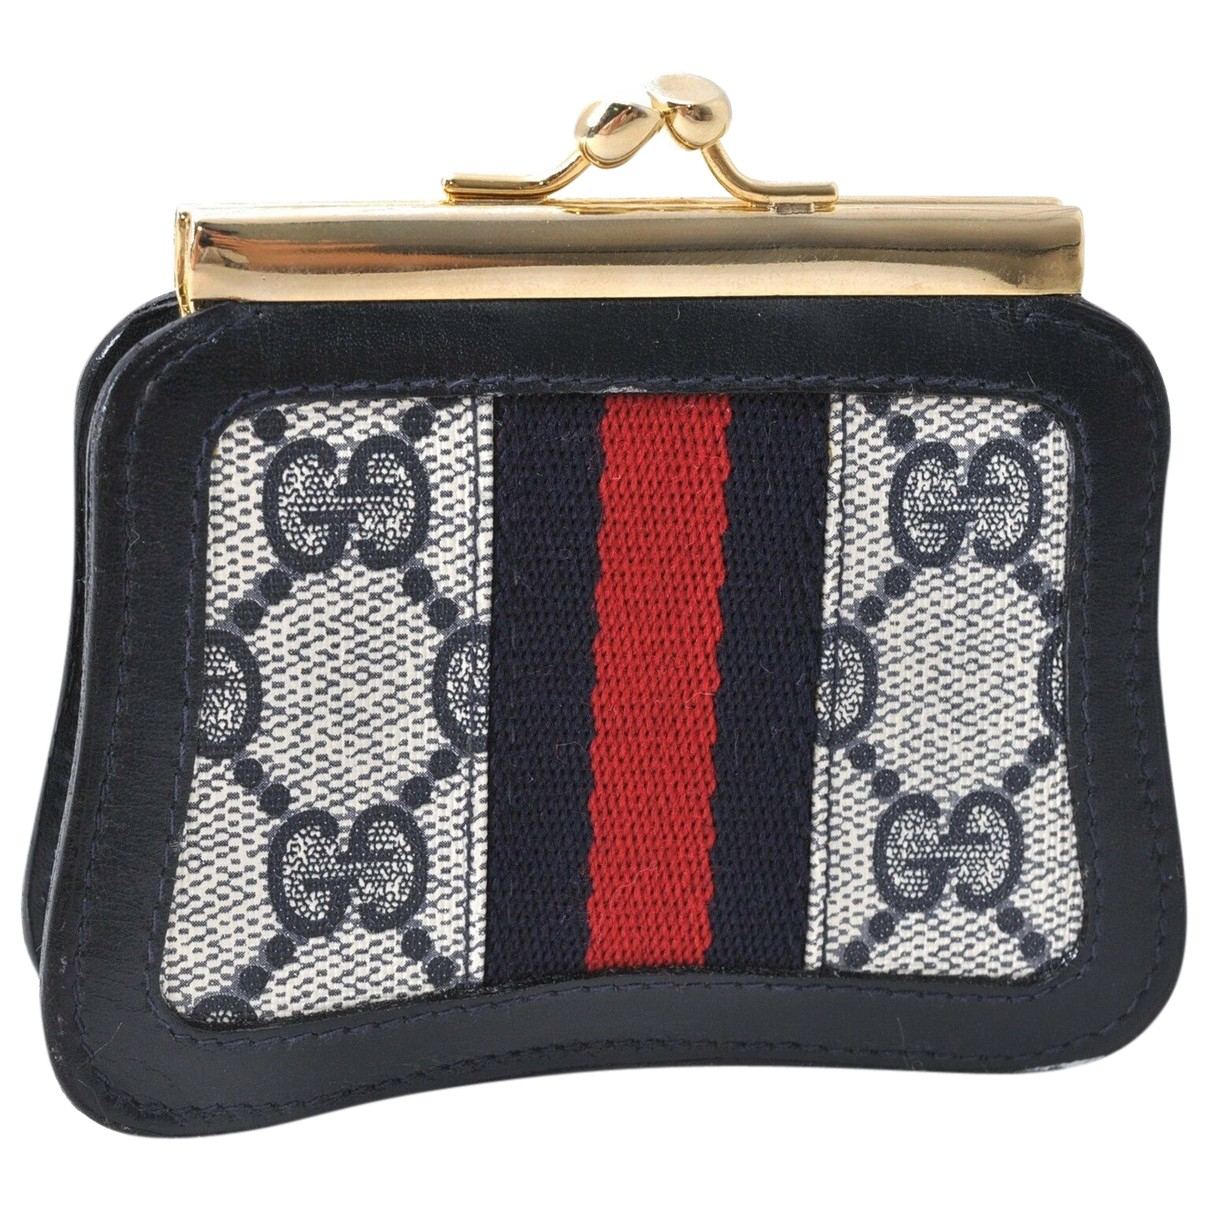 Gucci N Navy Cloth handbag for Women N